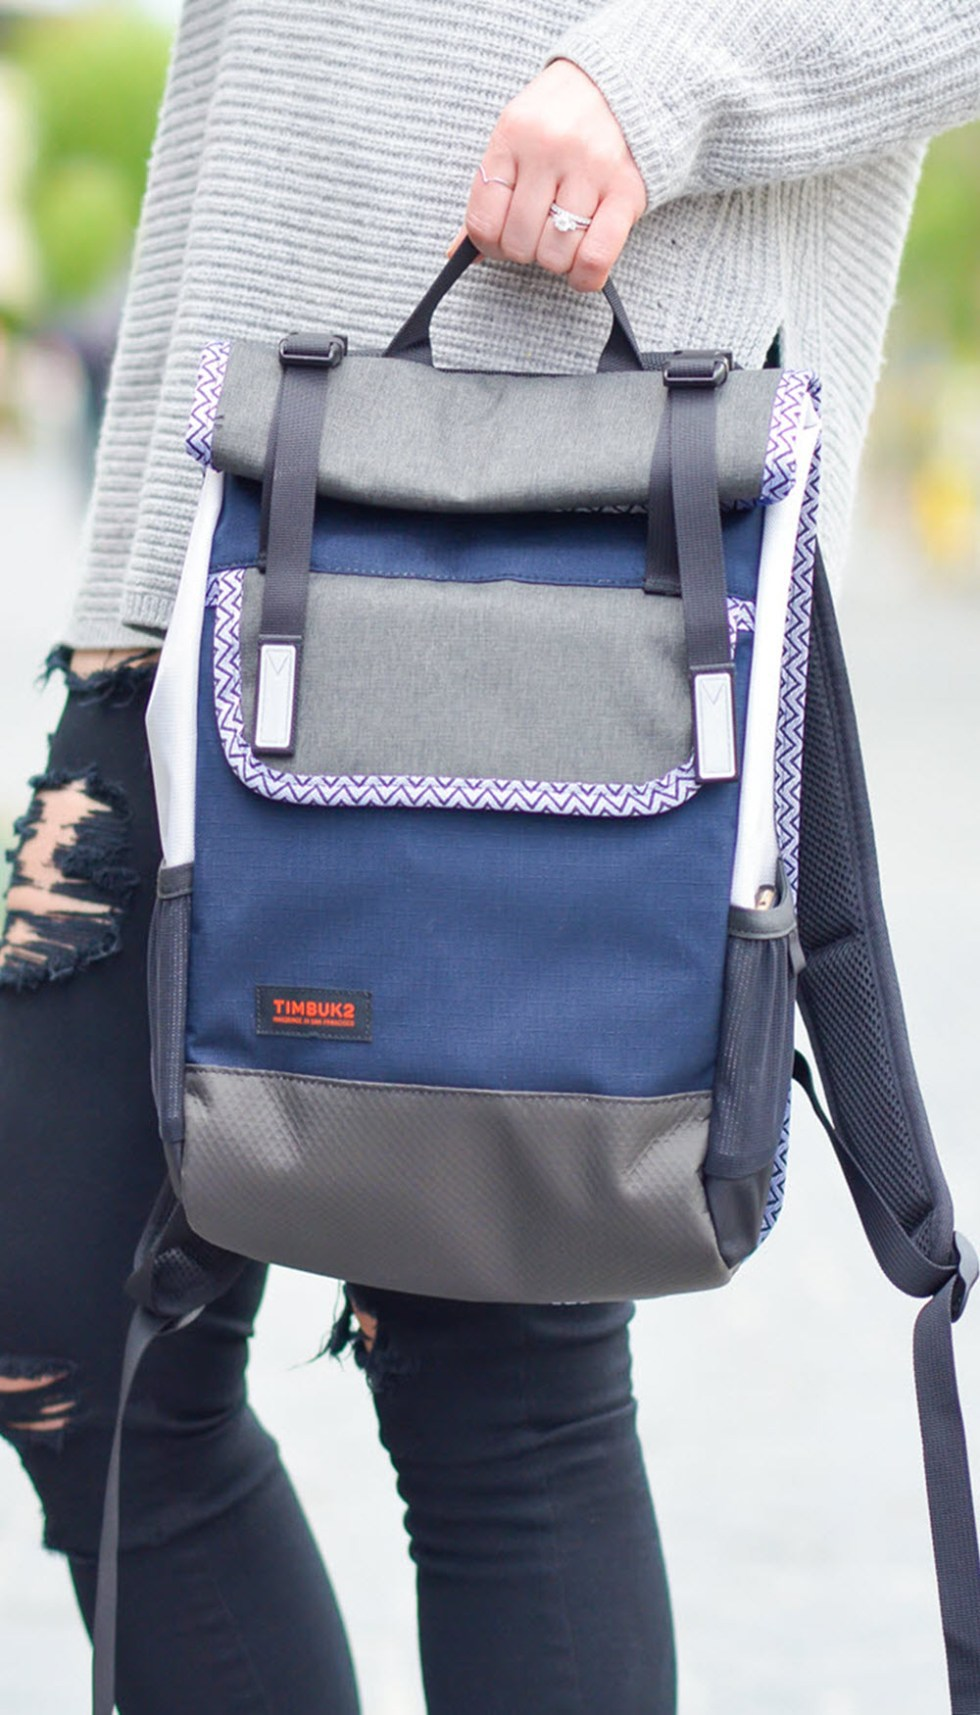 Mini Timbuk2 Prospect Backpack - Best Small Backpack for Day Hikes Review